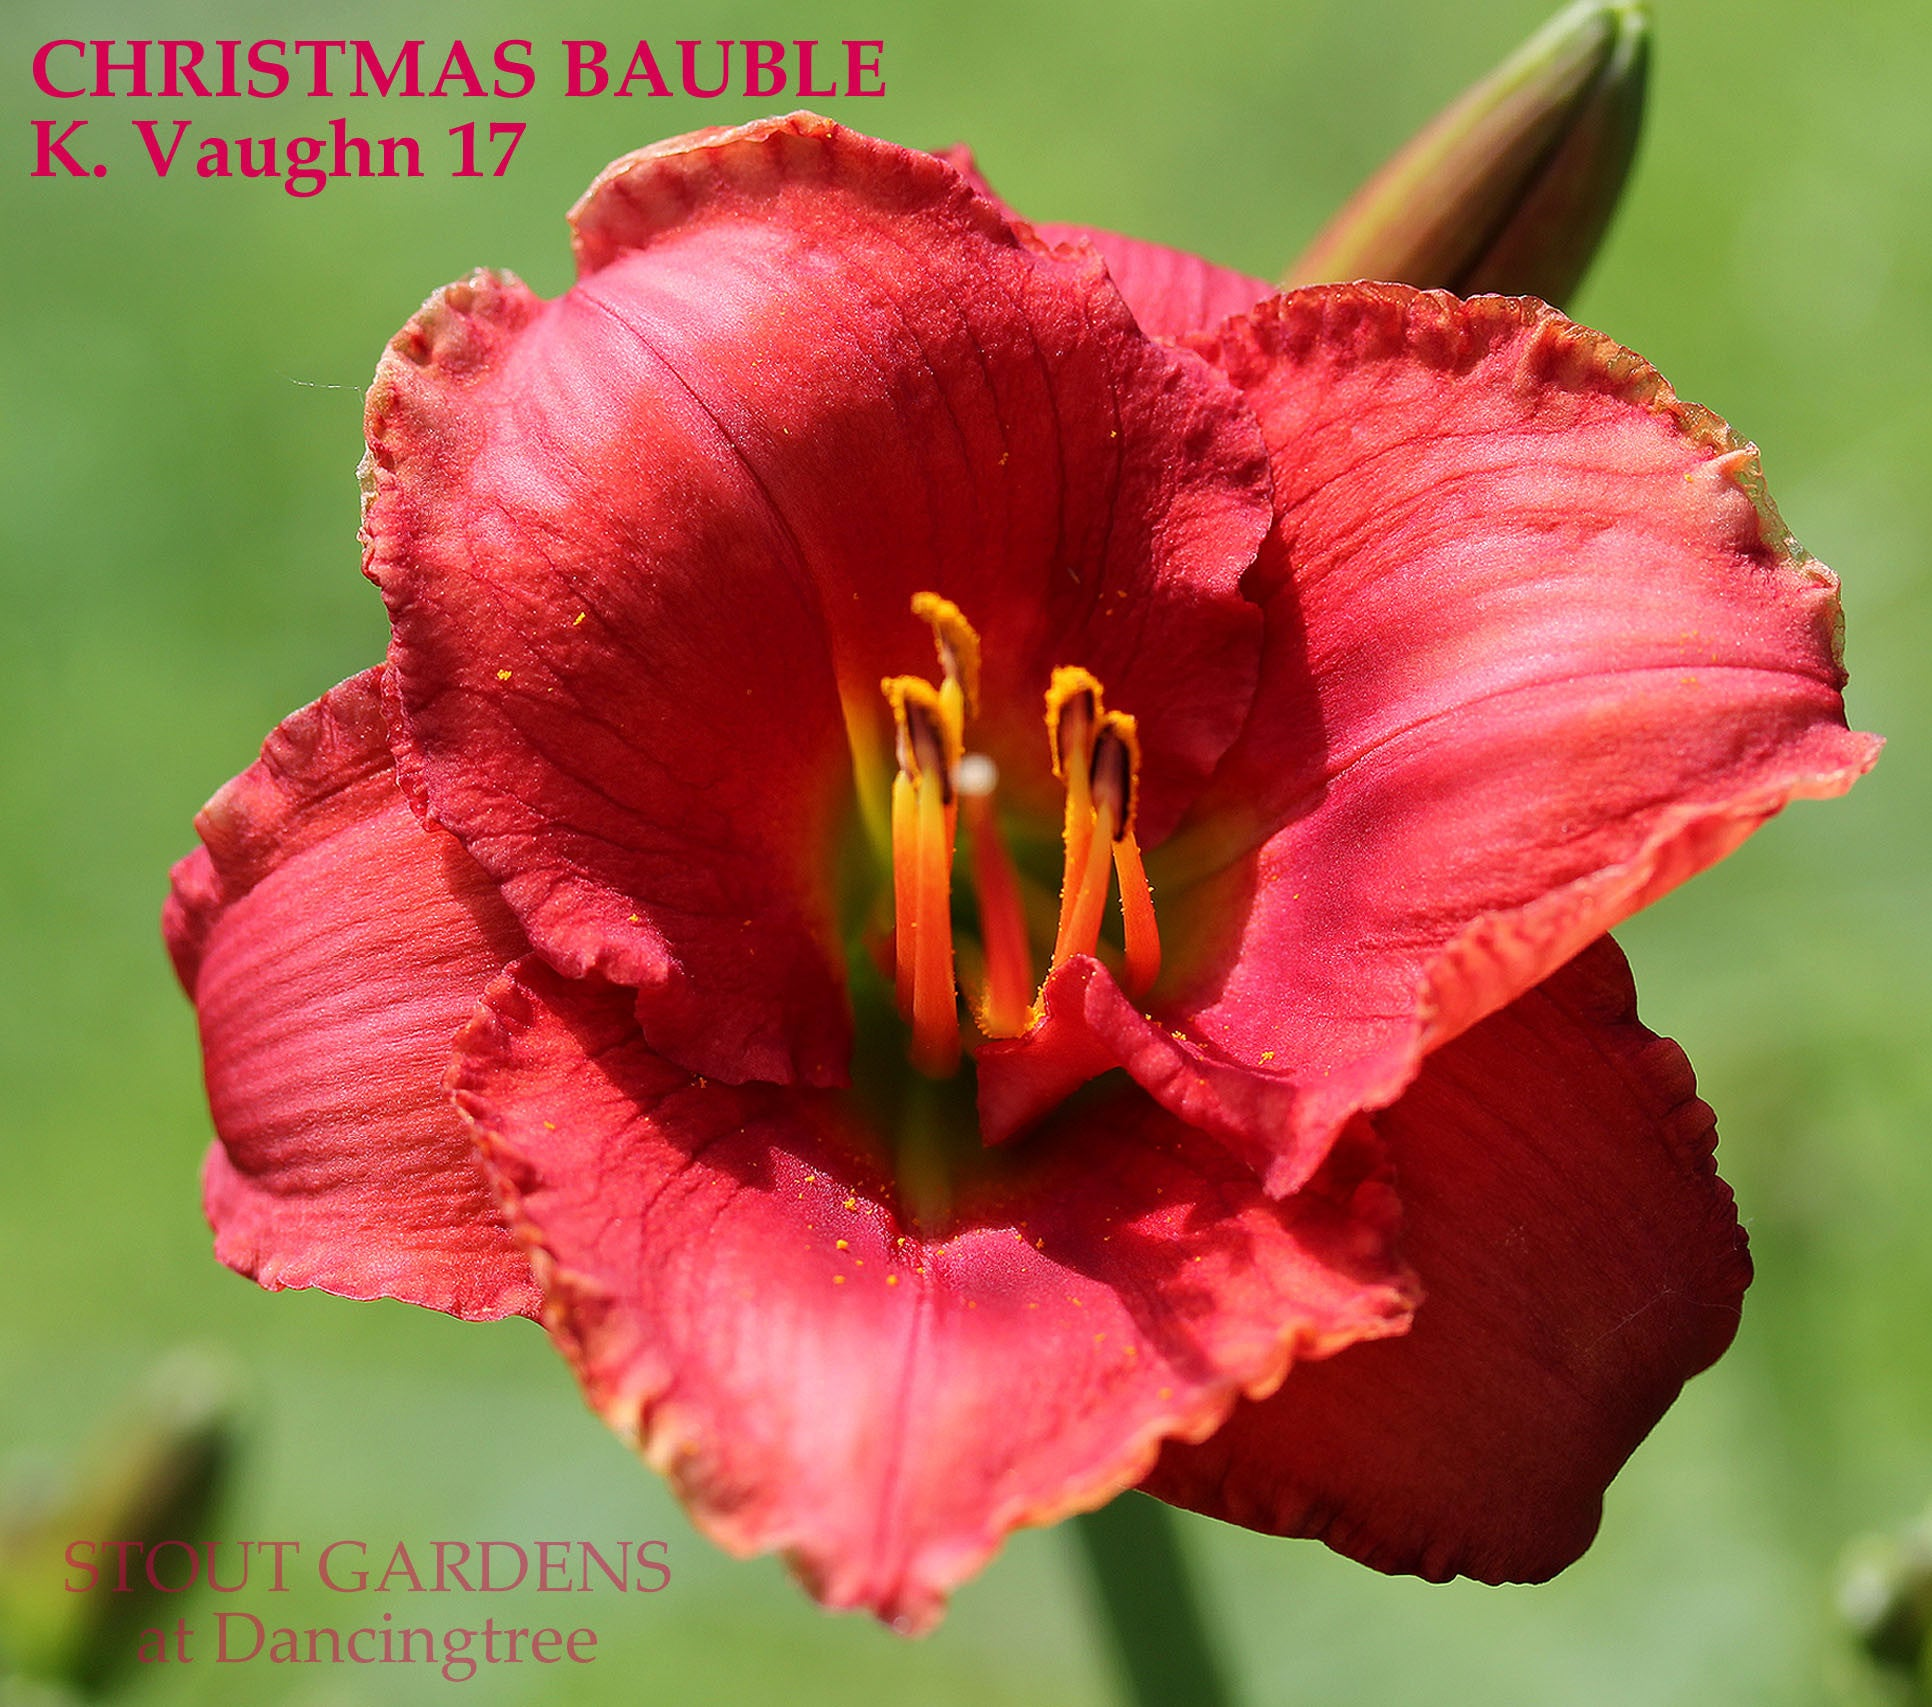 Daylily christmas bauble stout gardens at dancingtree daylily christmas bauble izmirmasajfo